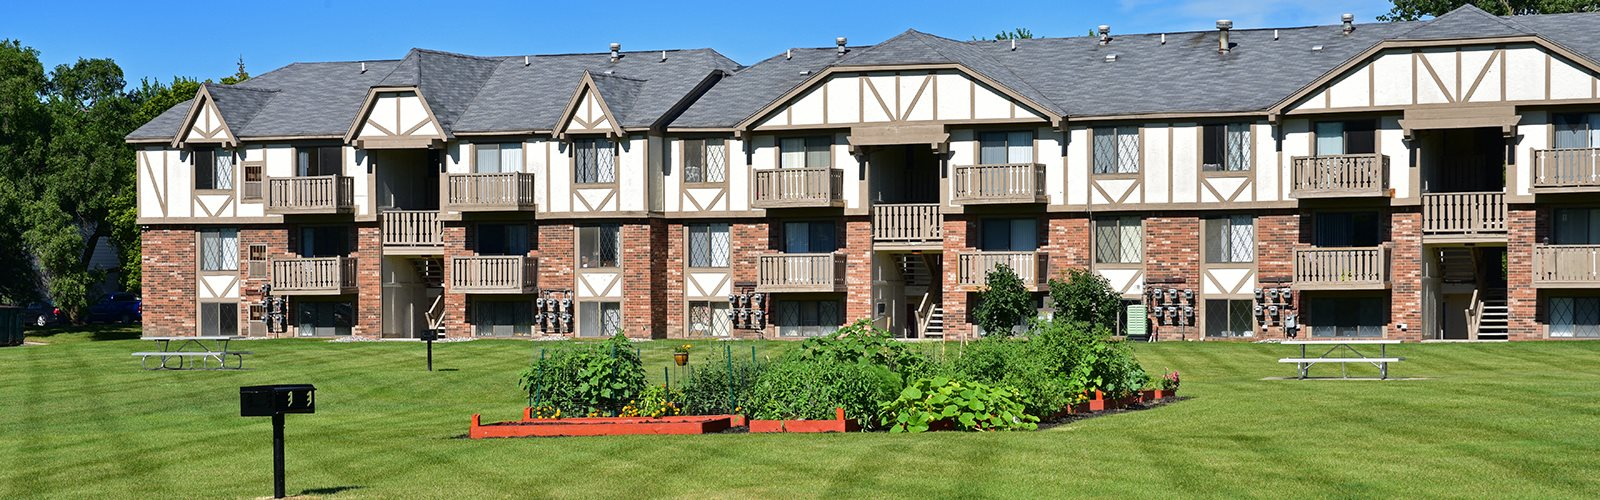 Lush Landscaping And Park-Like Setting at Huntington Place Apartments, Essexville, 48732